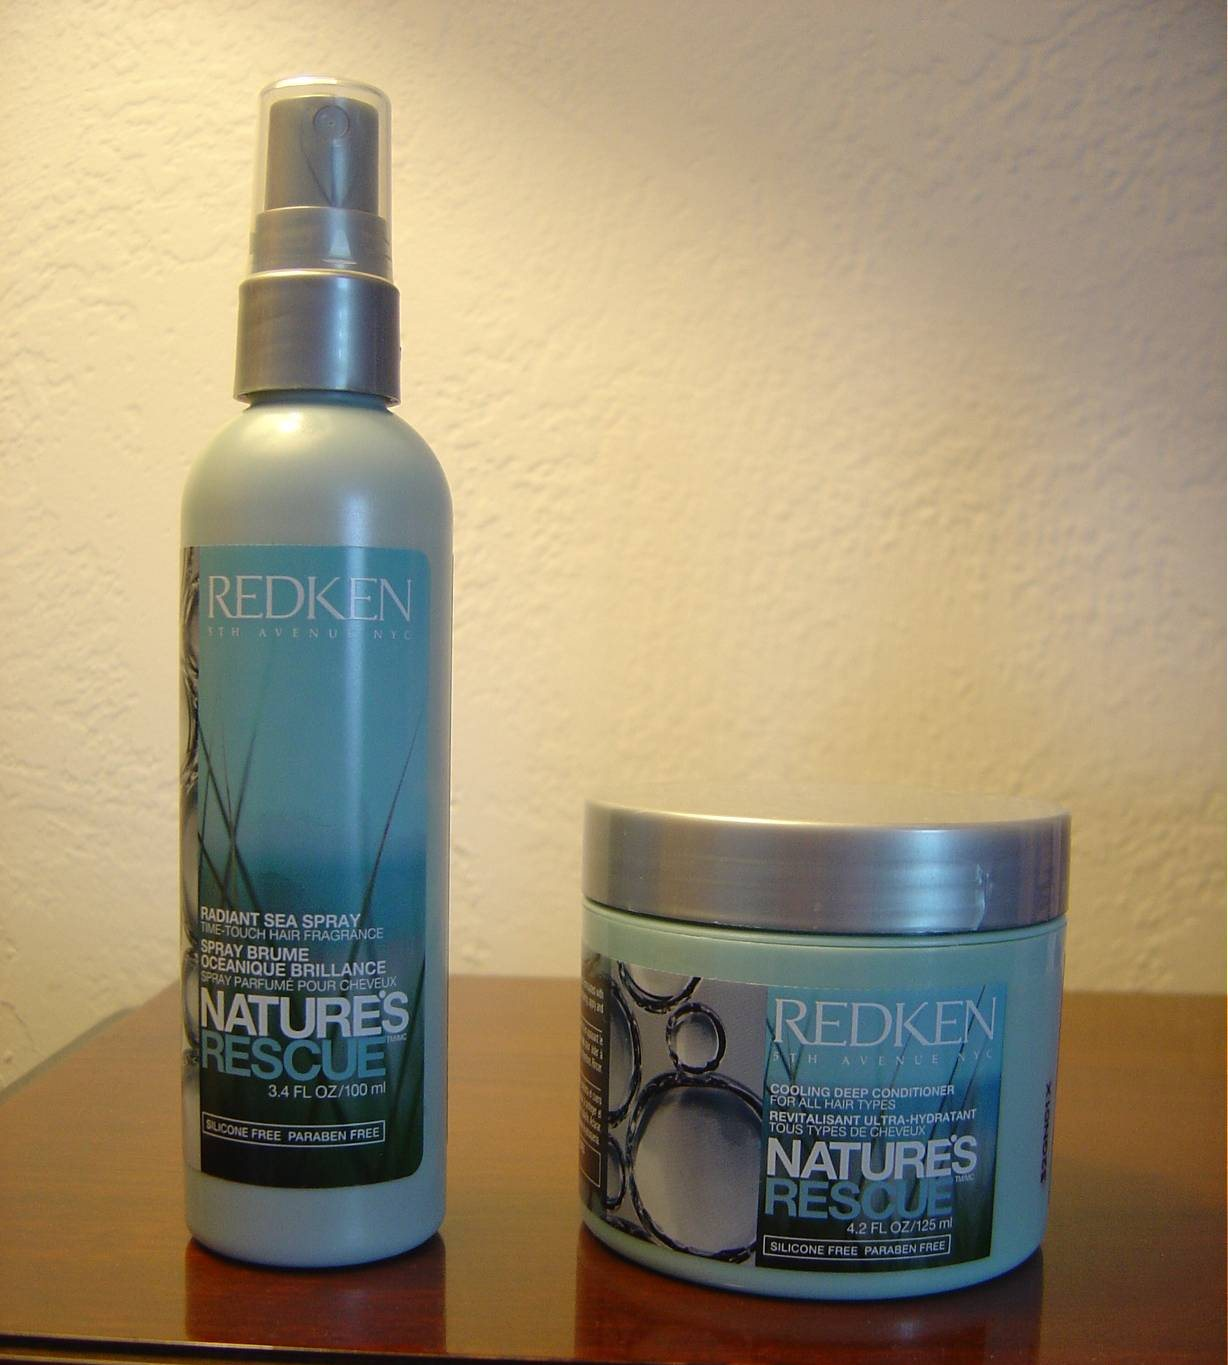 Redken Nature's Rescue Radiant Sea Spray and Cooling Deep Conditioner